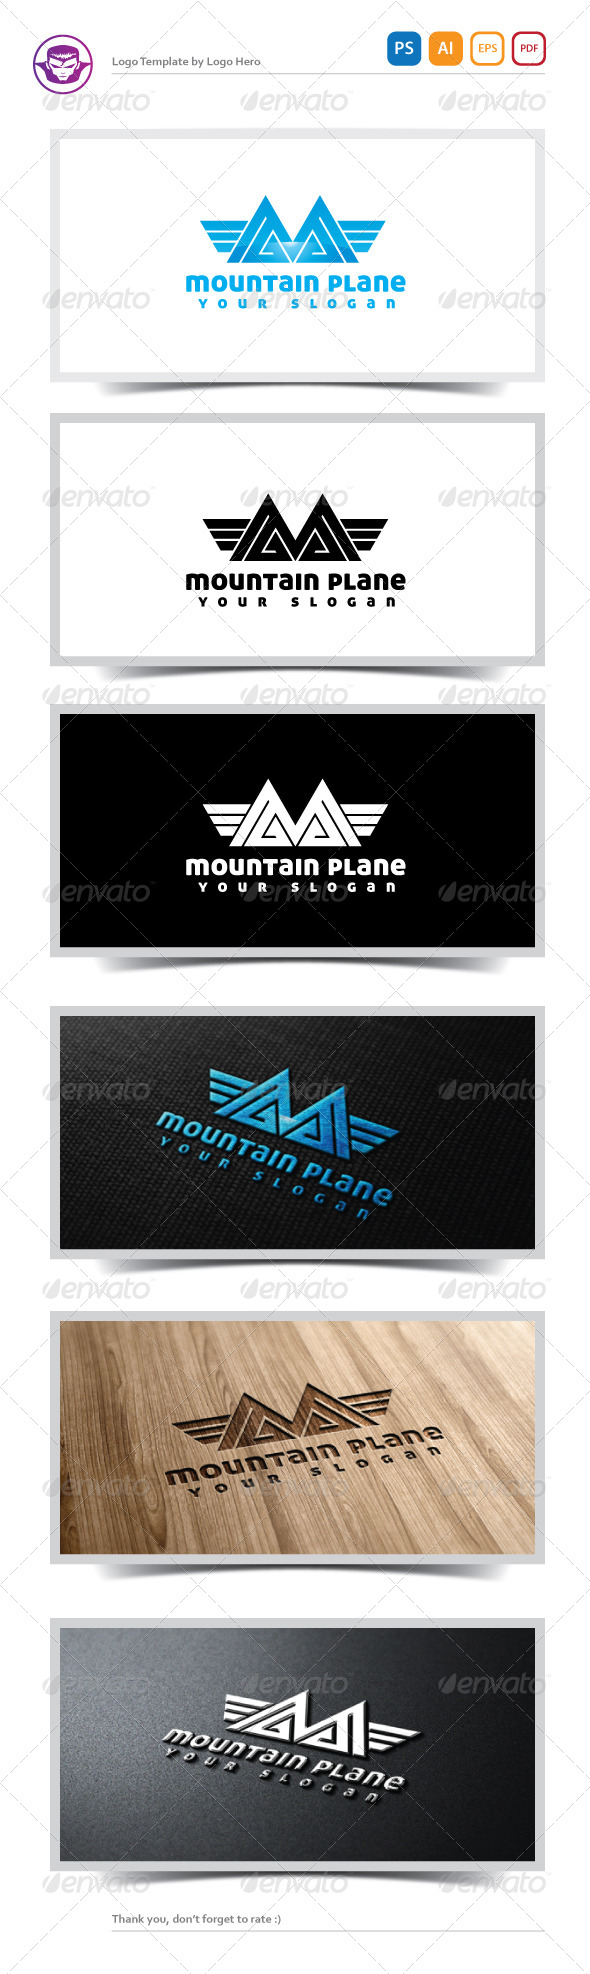 Mountain Plane Logo Template